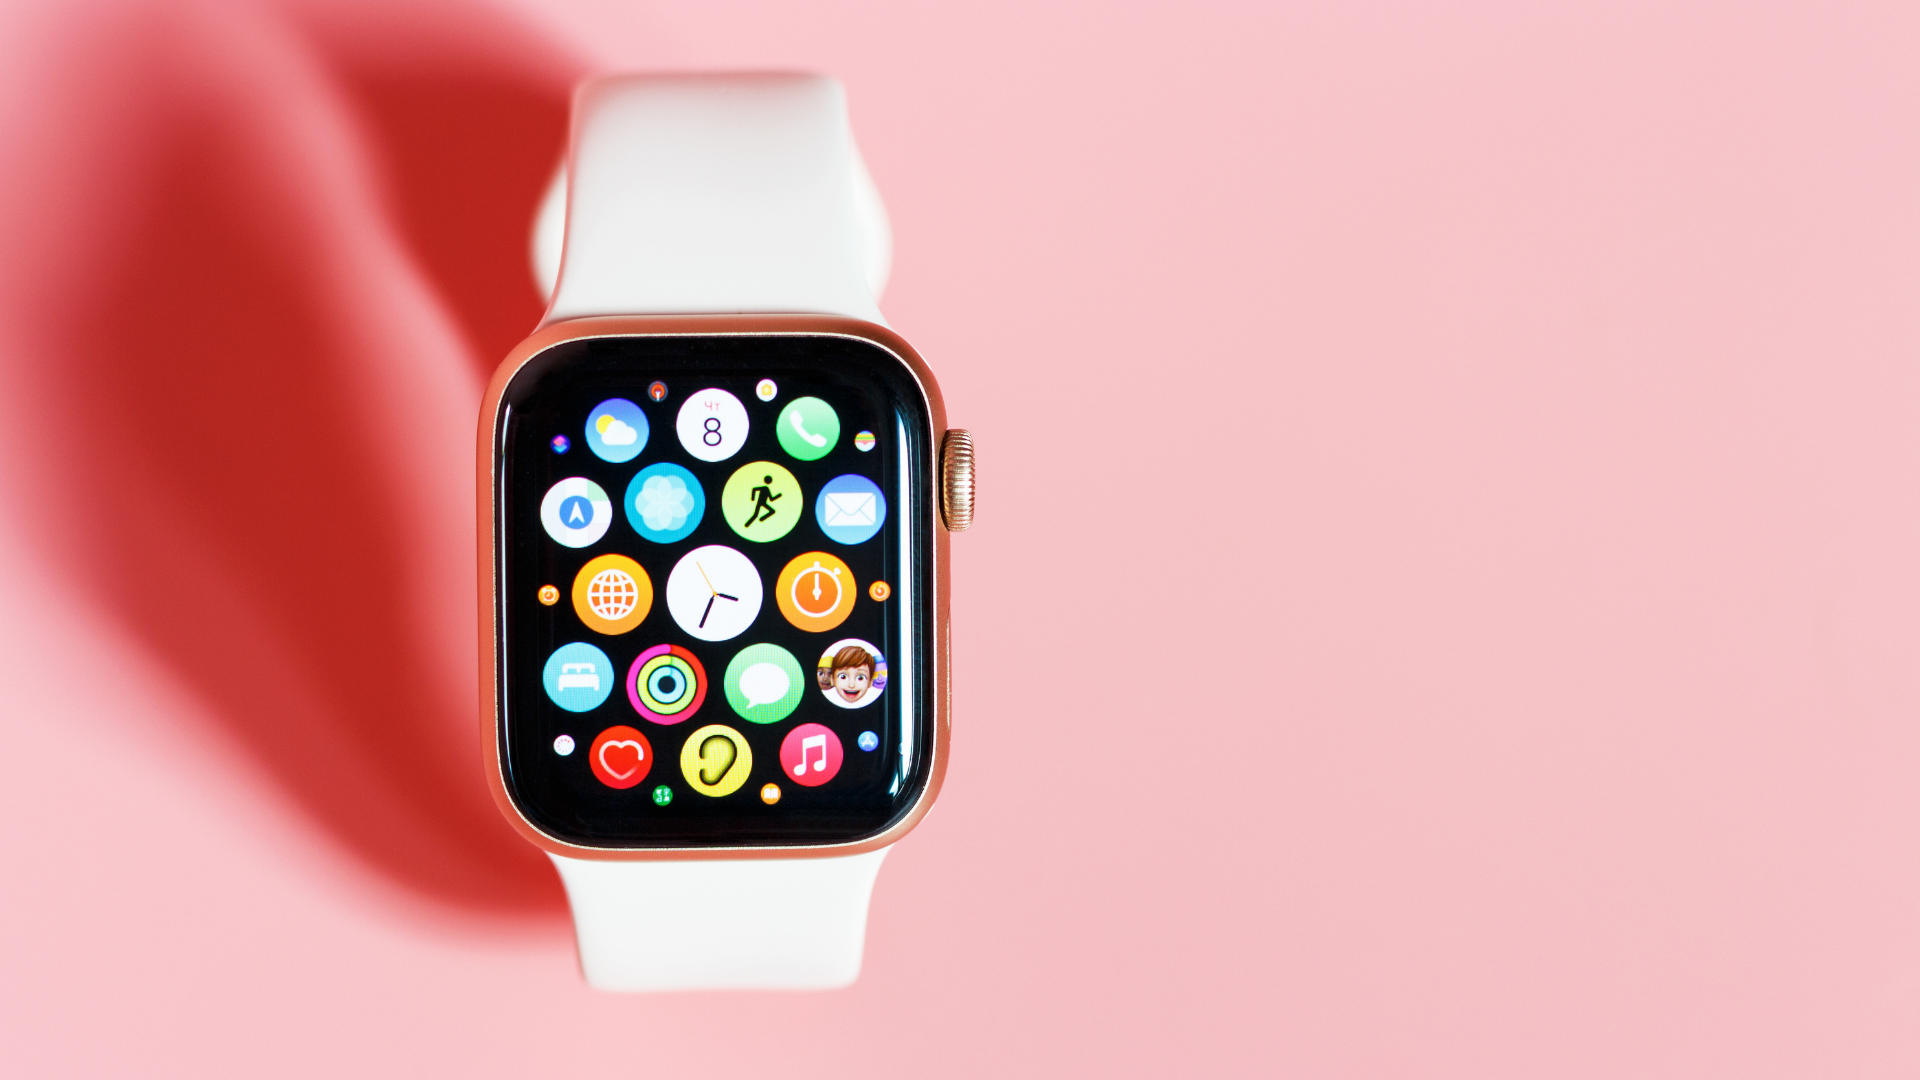 From what age is an Apple Watch suitable for a child?